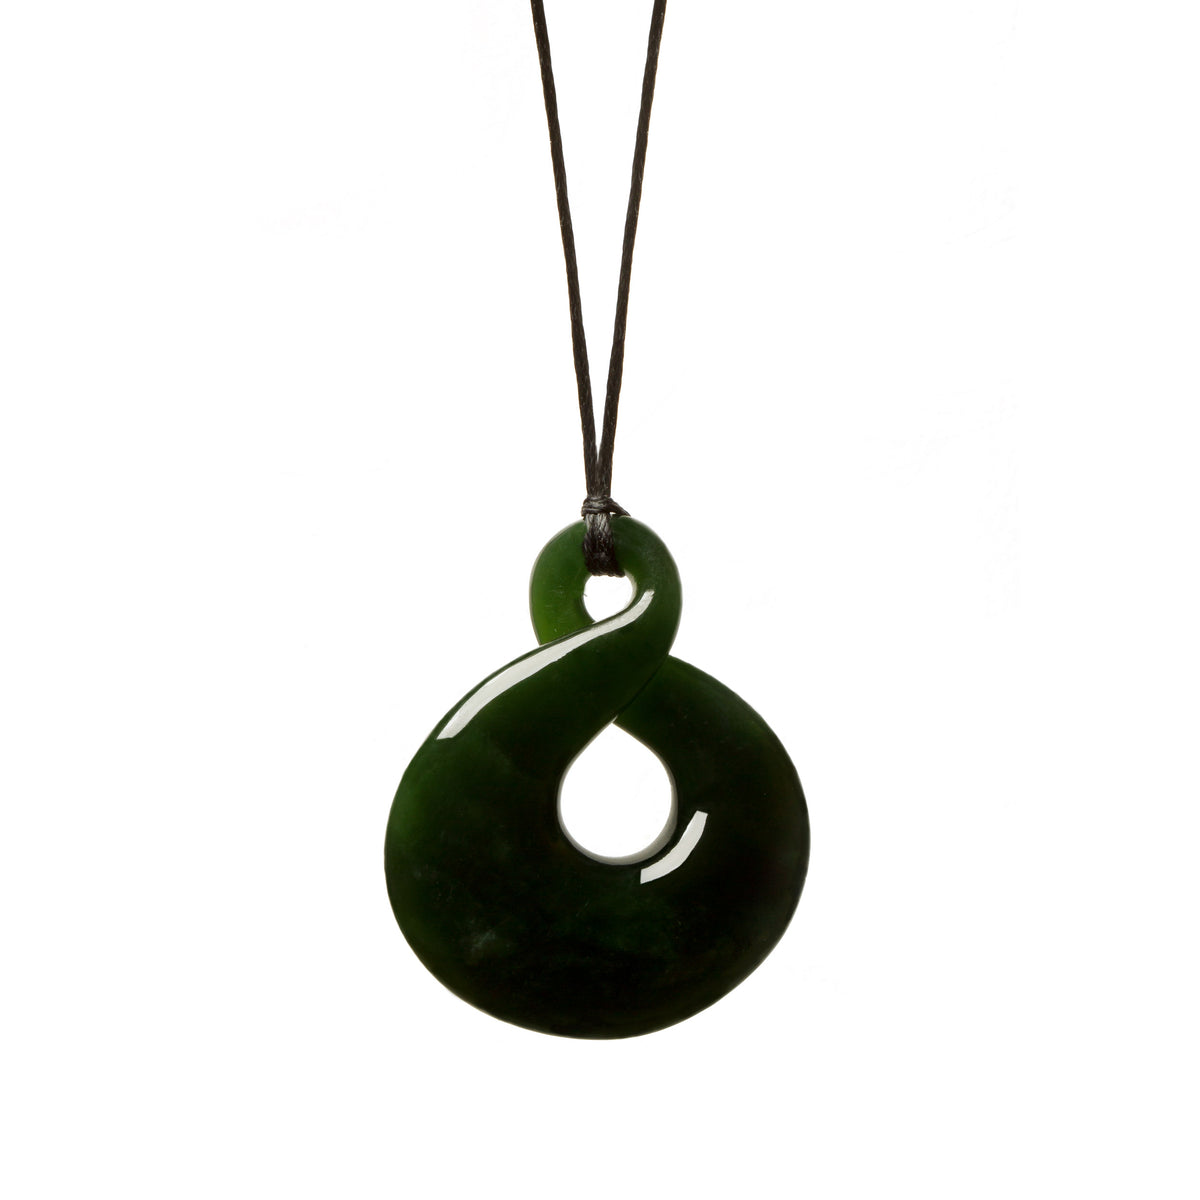 New Zealand Pounamu // JDHWP-8-A / 40mm x 32mm